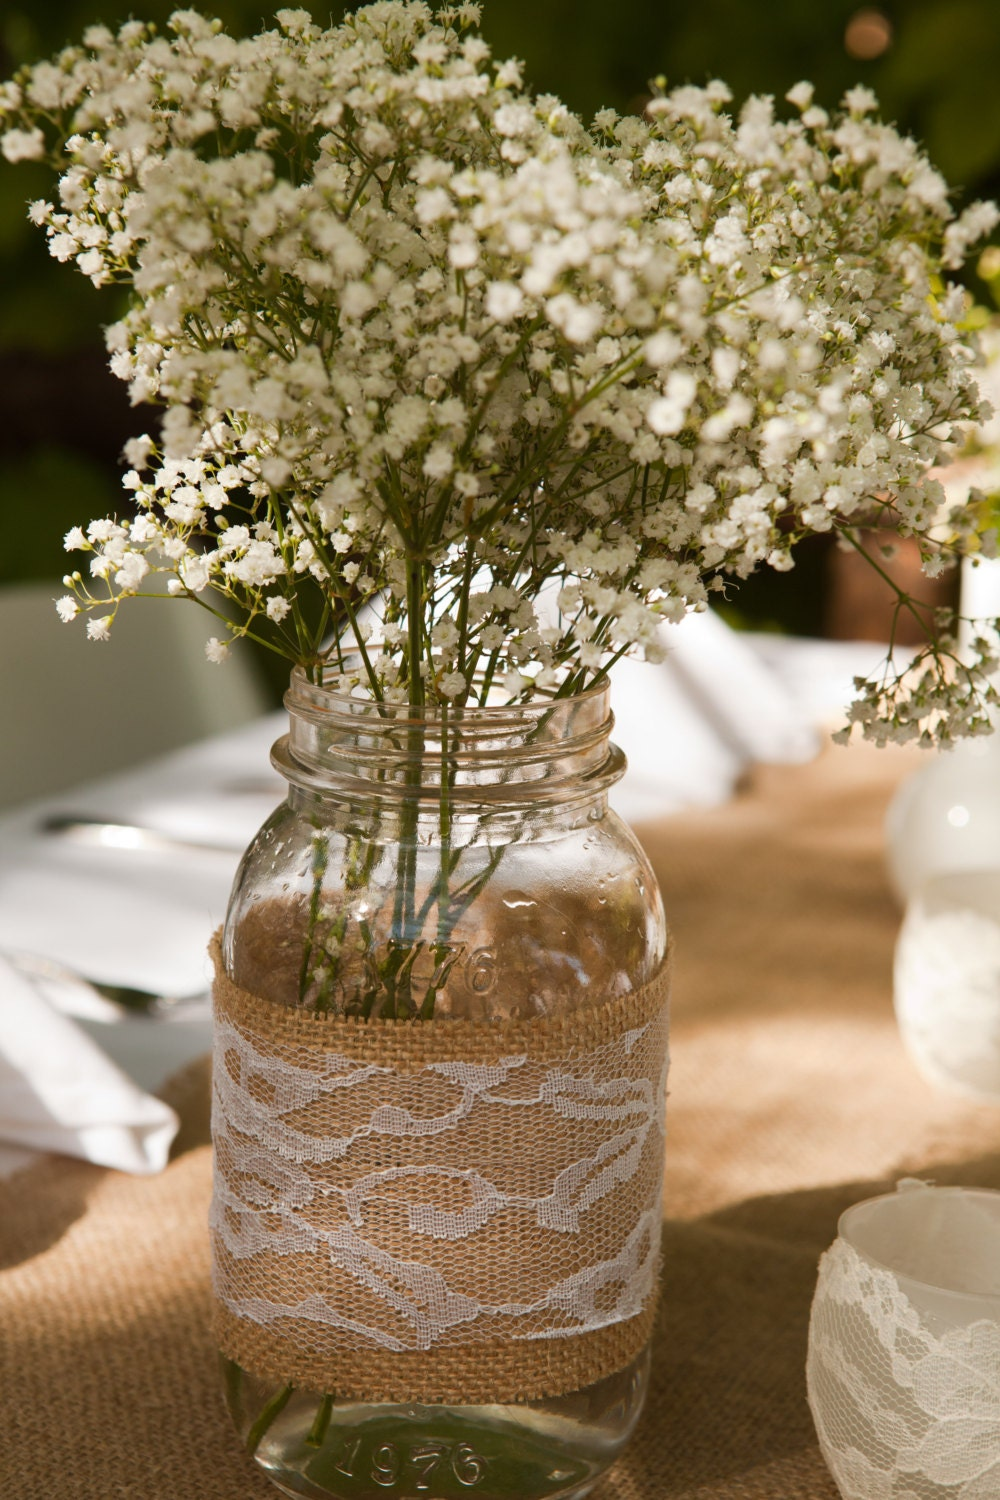 Rustic Wedding Decor Lace And Burlap Mason Jar